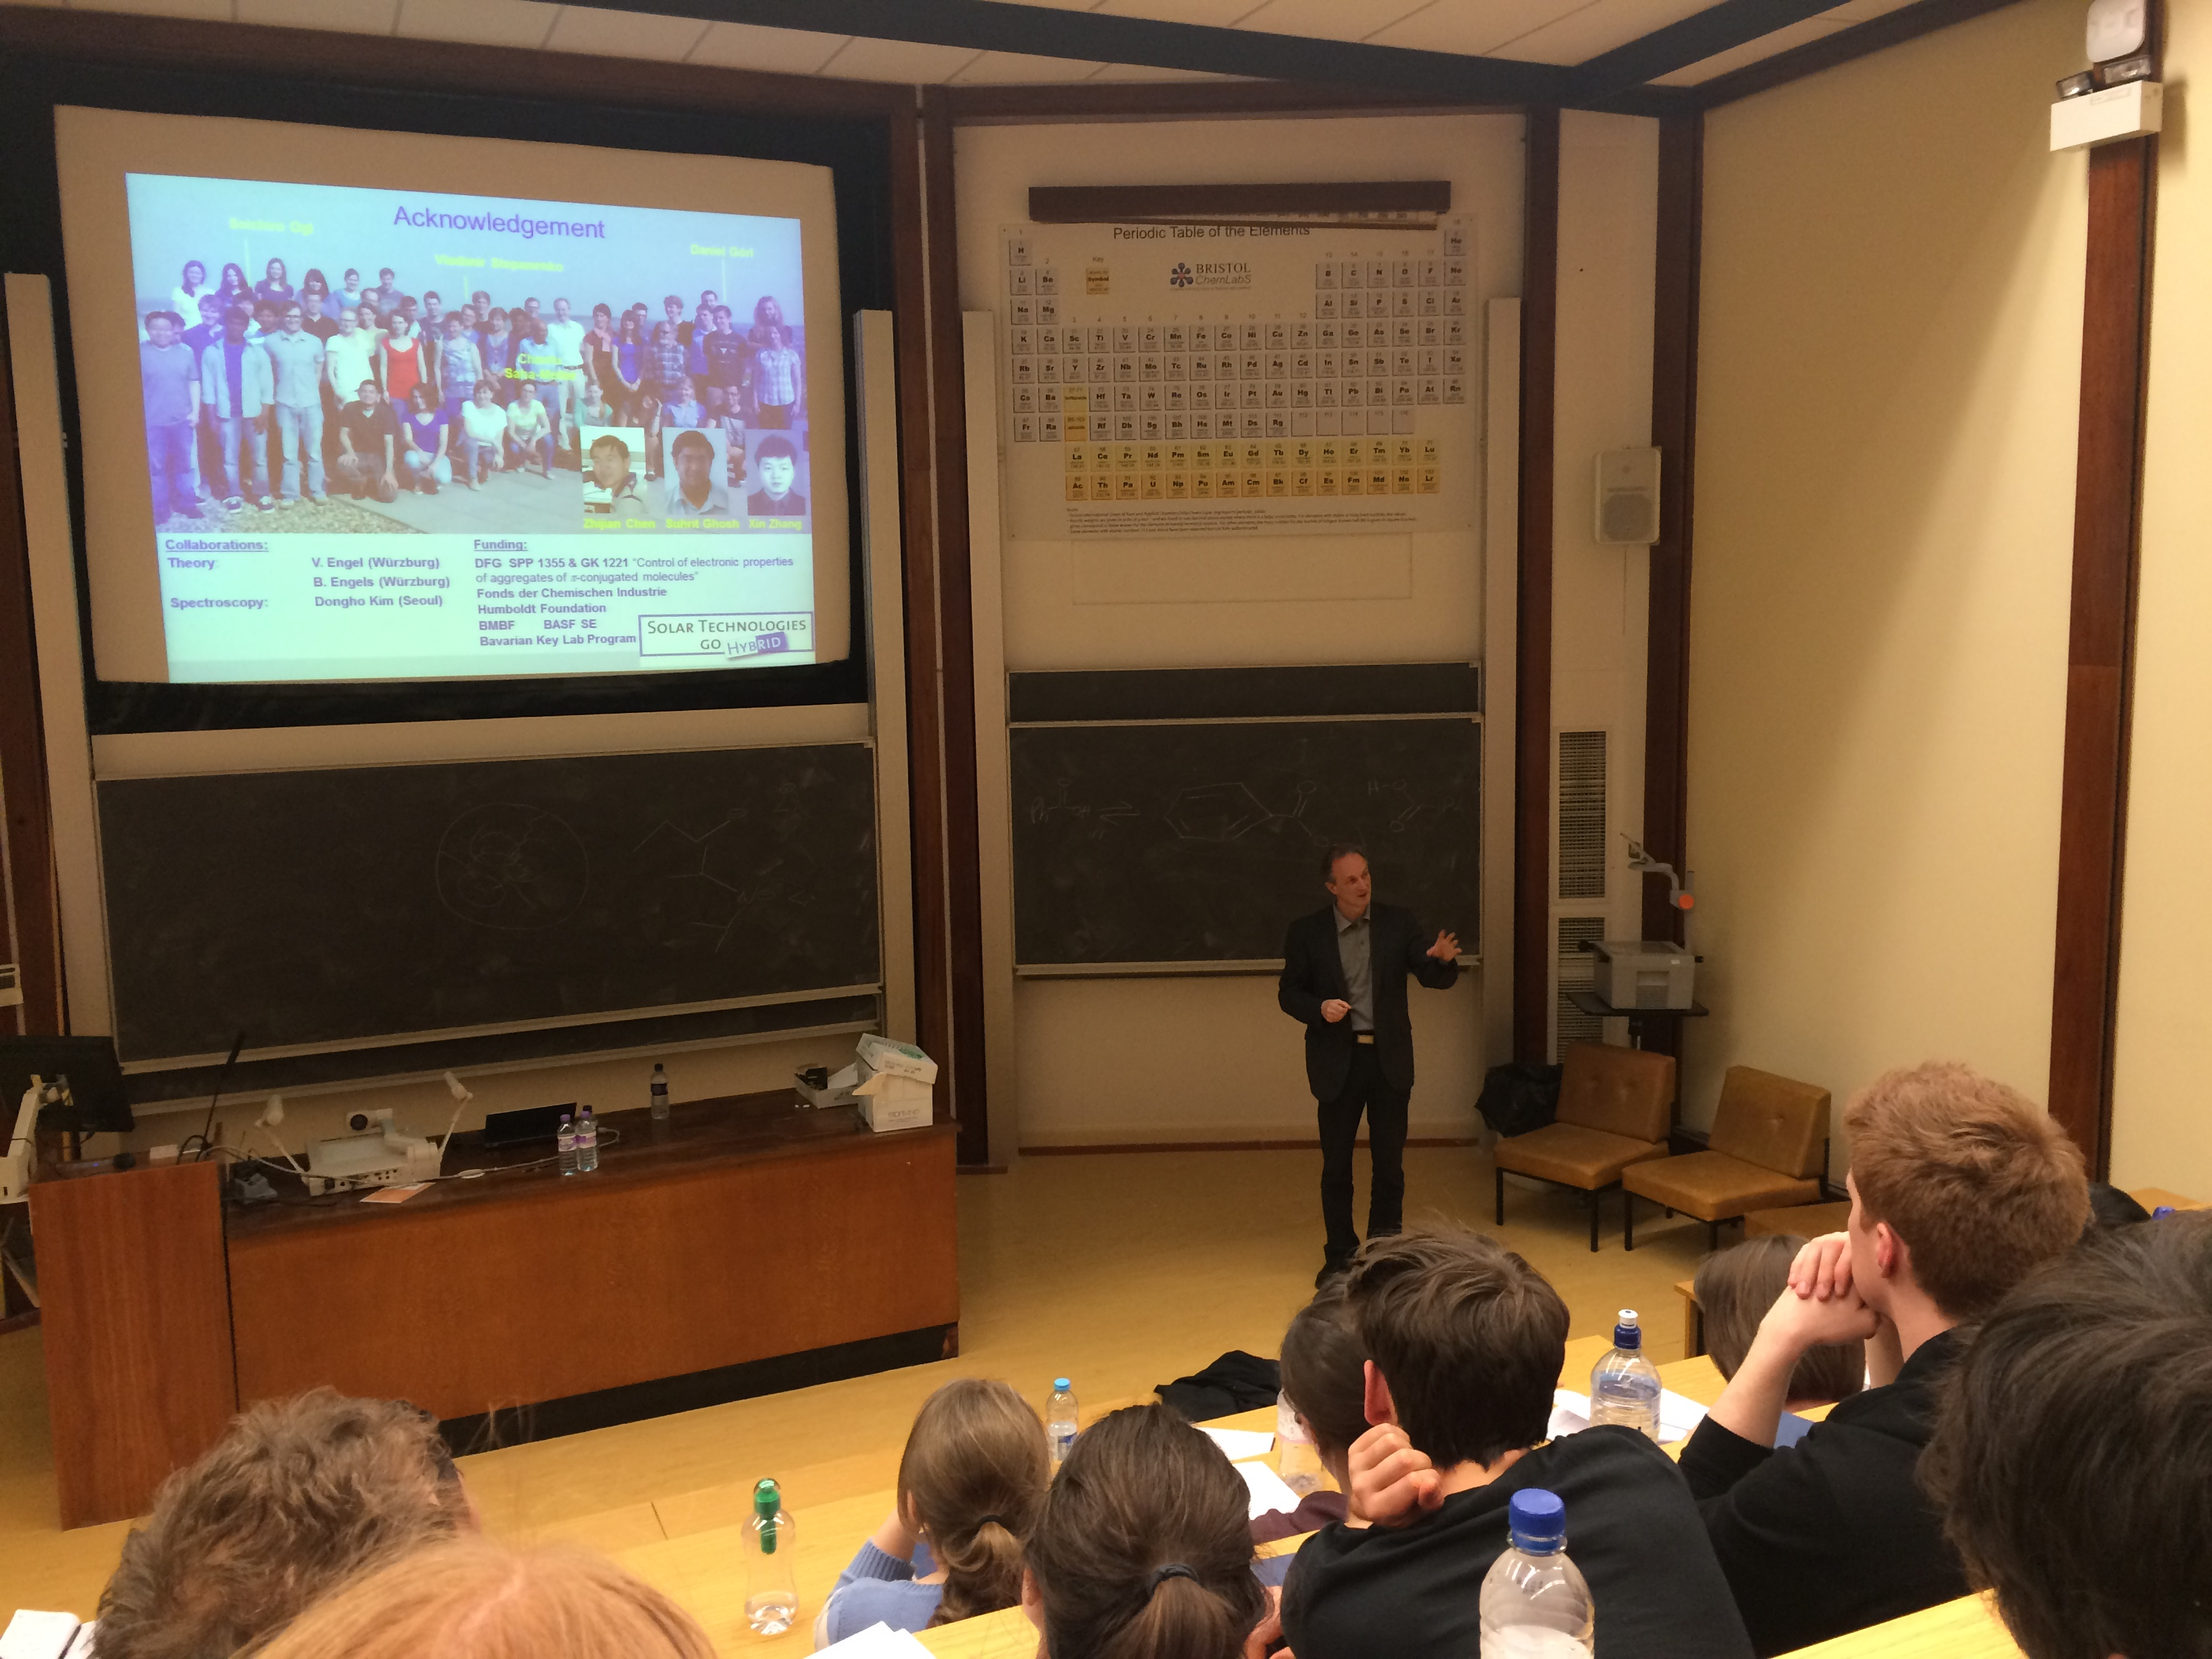 faul research group his lecture was preceded by a series of excellent talks by bristol postgraduate researchers on topics from nanoparticle assembly at interfaces to the